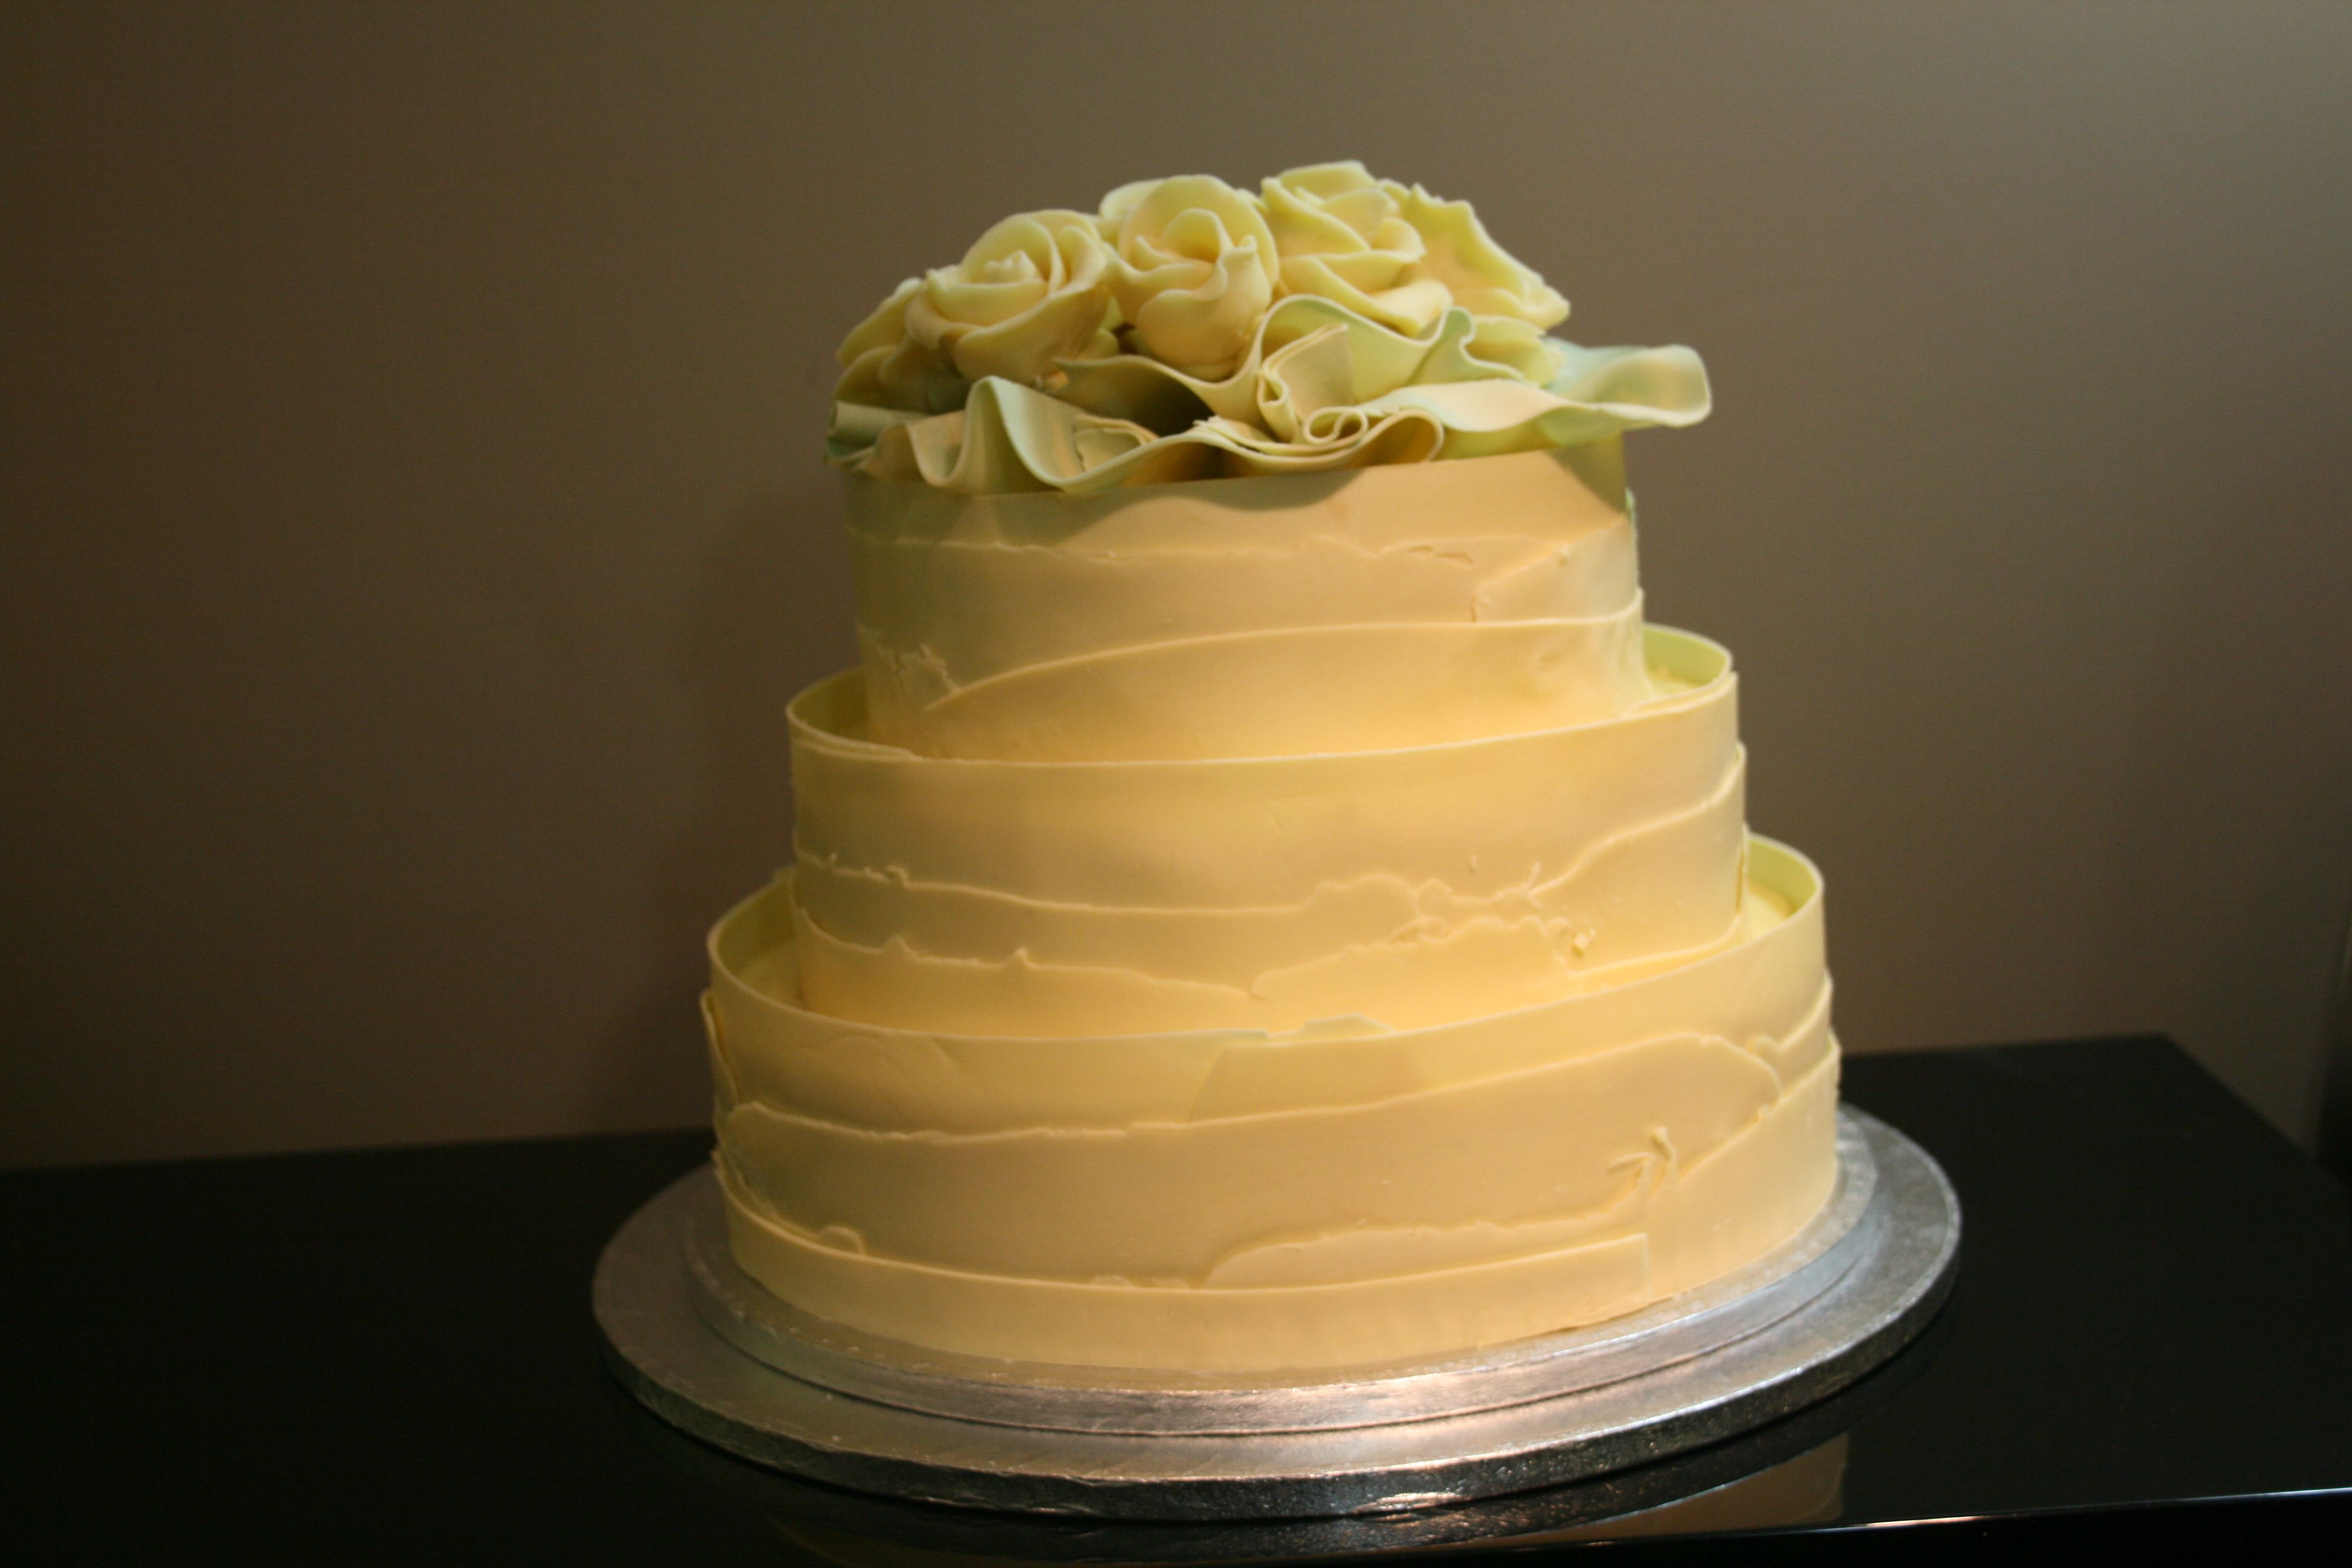 A 3 tiers of #whitechocolate wrap, to give a rustic finished #weddingcake...